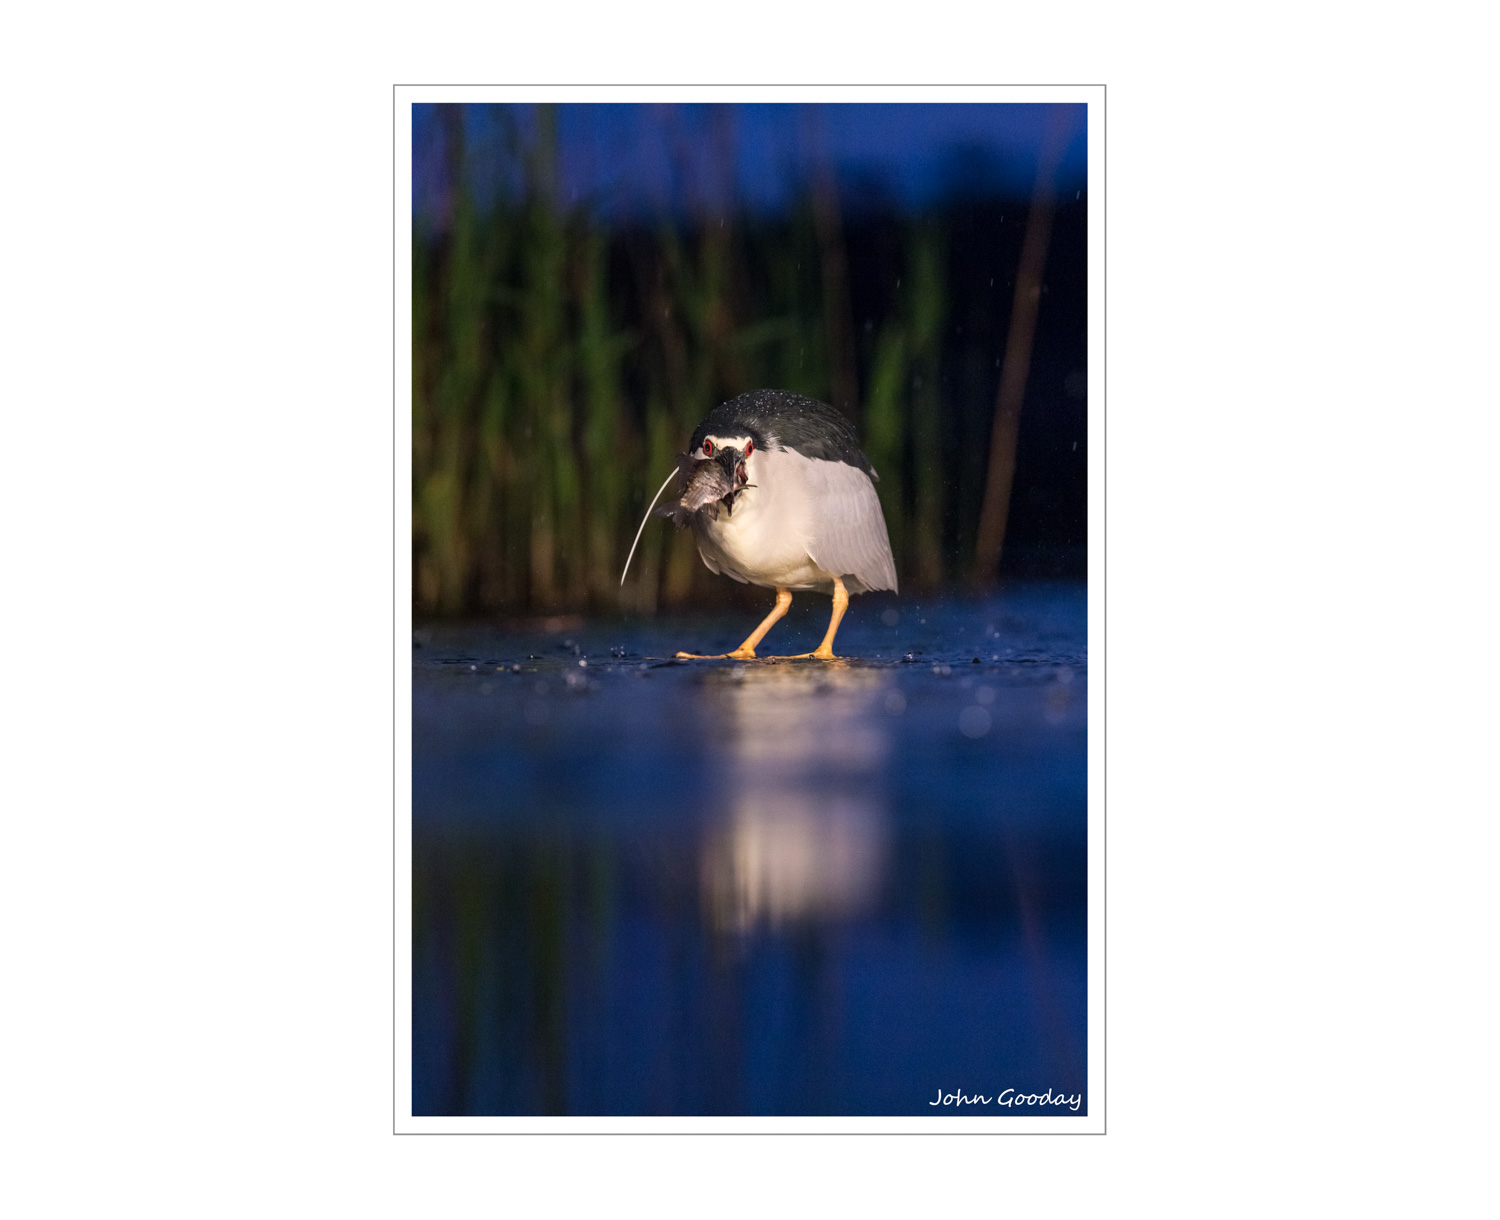 (Image: Night Heron holding its prize at nightfall. Canon EOS 1DX, EF70-200mm f/2.8L IS II, 1/1000 sec @ f/4, ISO 2000, tripod, hide)